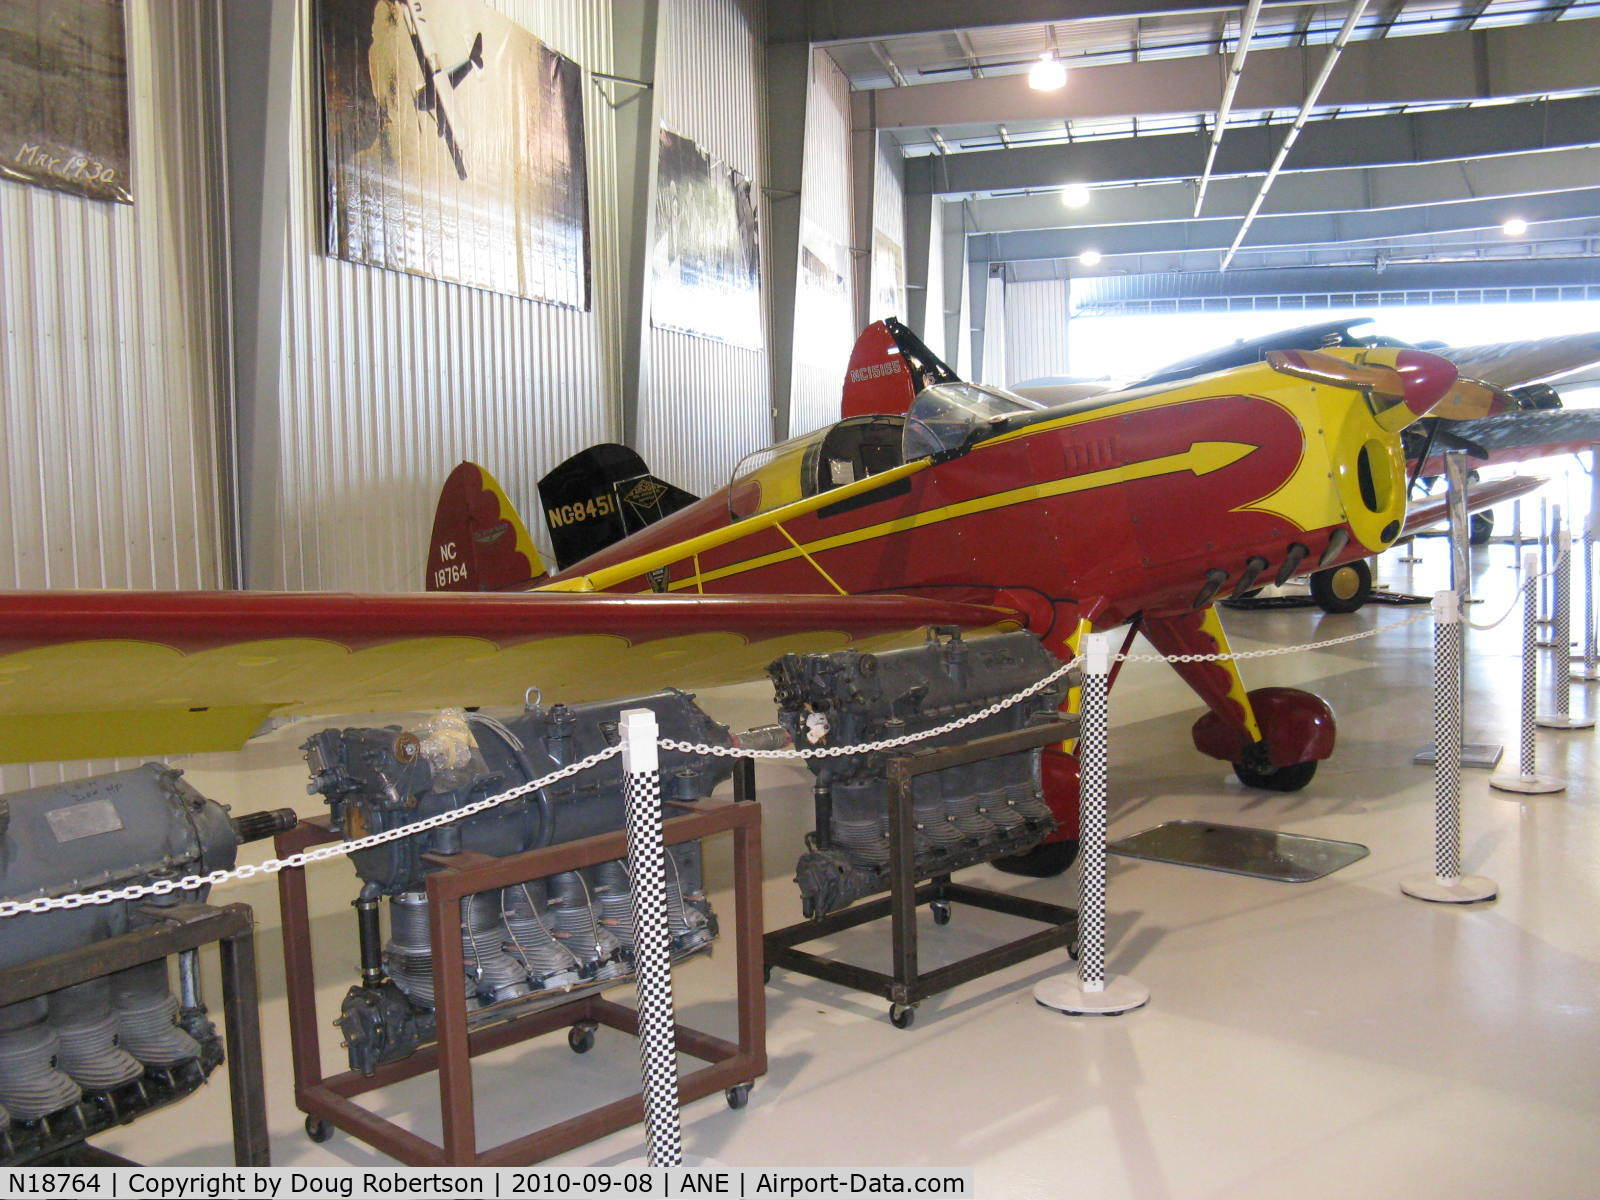 N18764, 1938 Arrow Sport M C/N 105, 1938 Arrow Aircraft and Motor ARROW SPORT M, Menasco PIRATE C4 D4 125 Hp, sole remaining example with Menasco engine. Experimental class. At Golden Wings Museum.